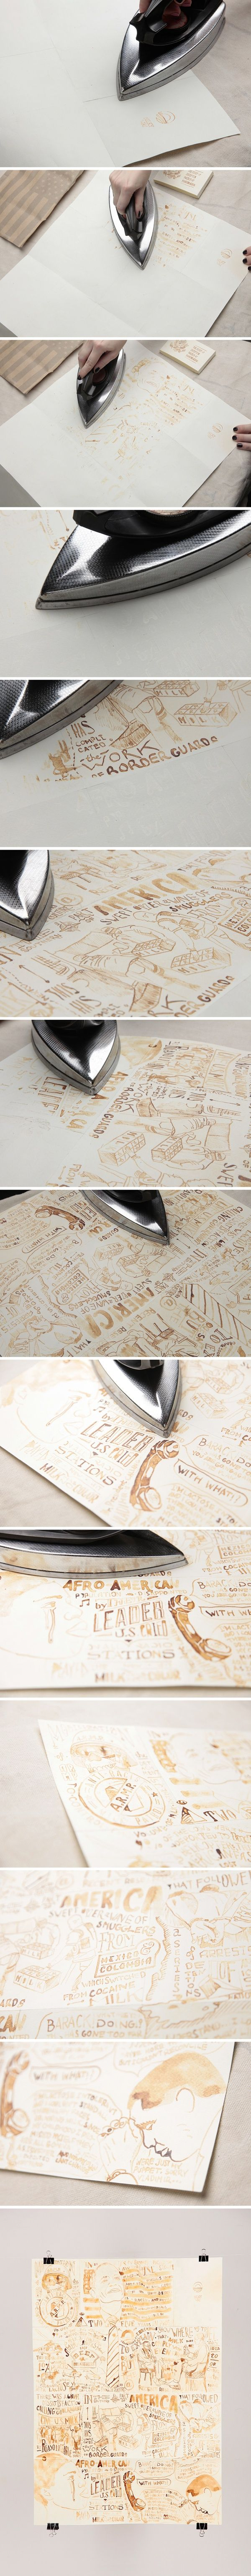 DIY :: Draw with milk on paper, let dry for 30 minutes, and then iron to reveal!